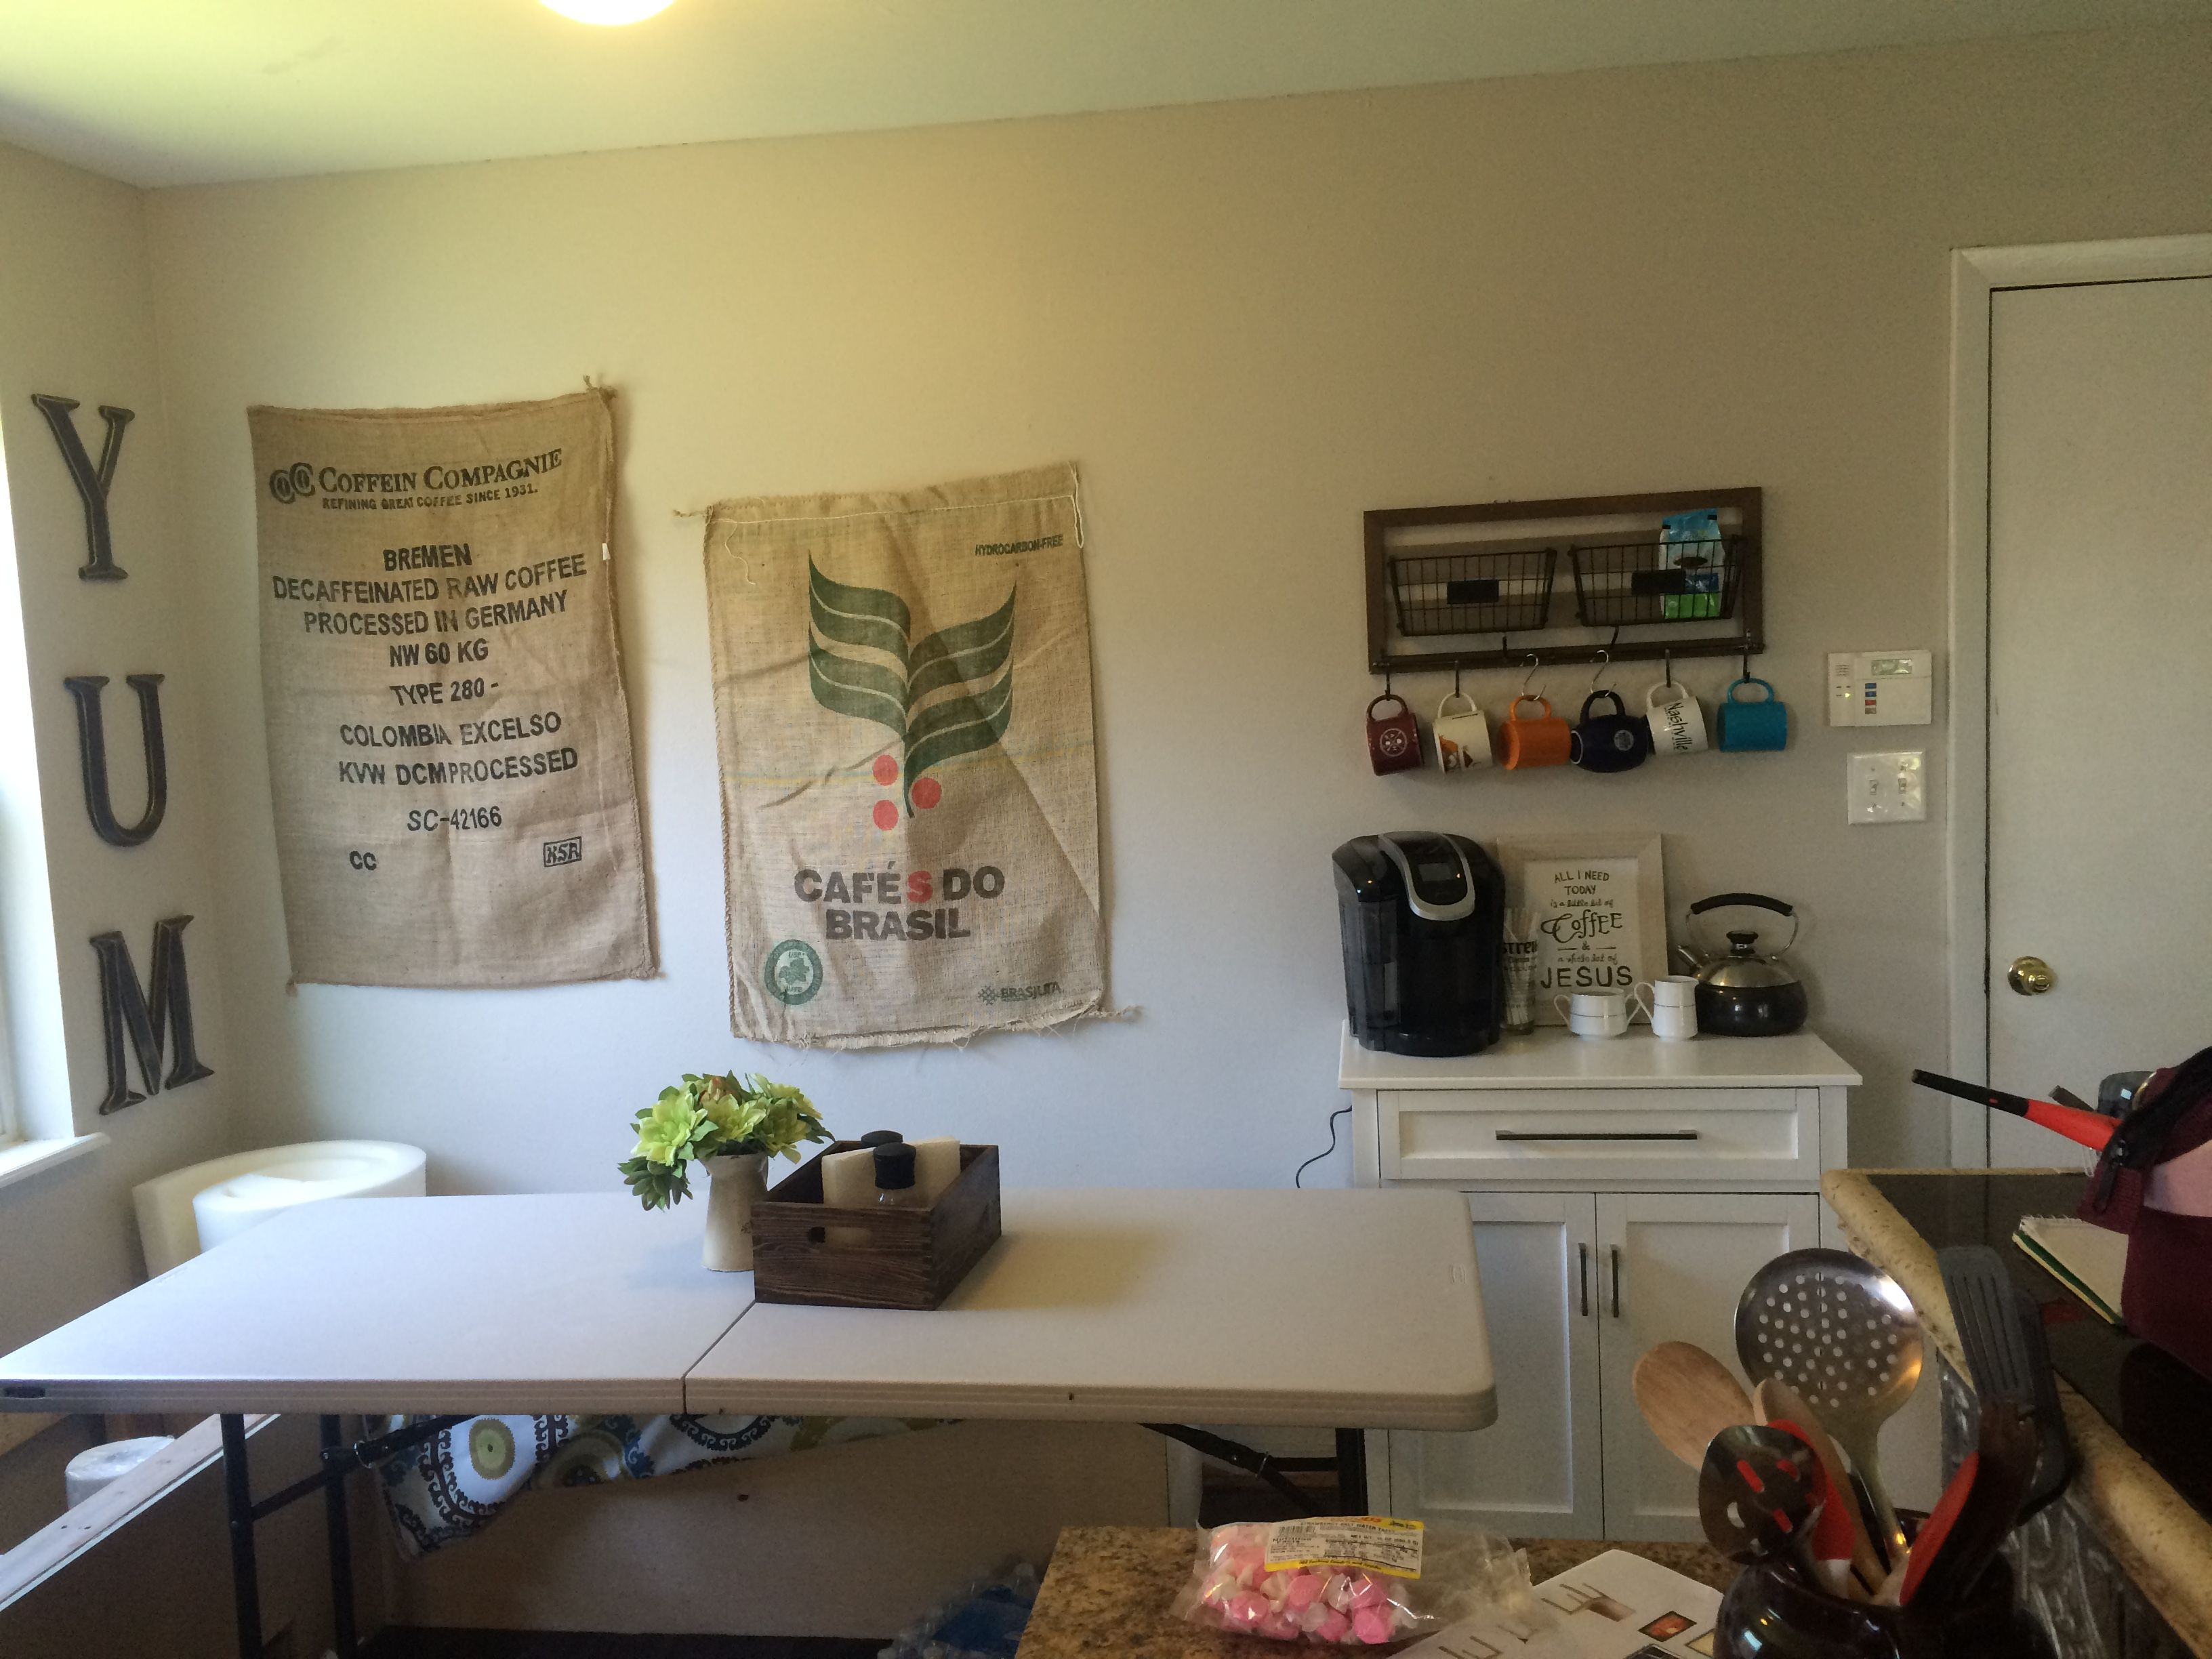 Burlap Sacks For A Fun Inexpensive Way To Fill Any Wall Space 0 77 Each Atwoods Farm And Ranch Store Wall Spaces Home Decor Home